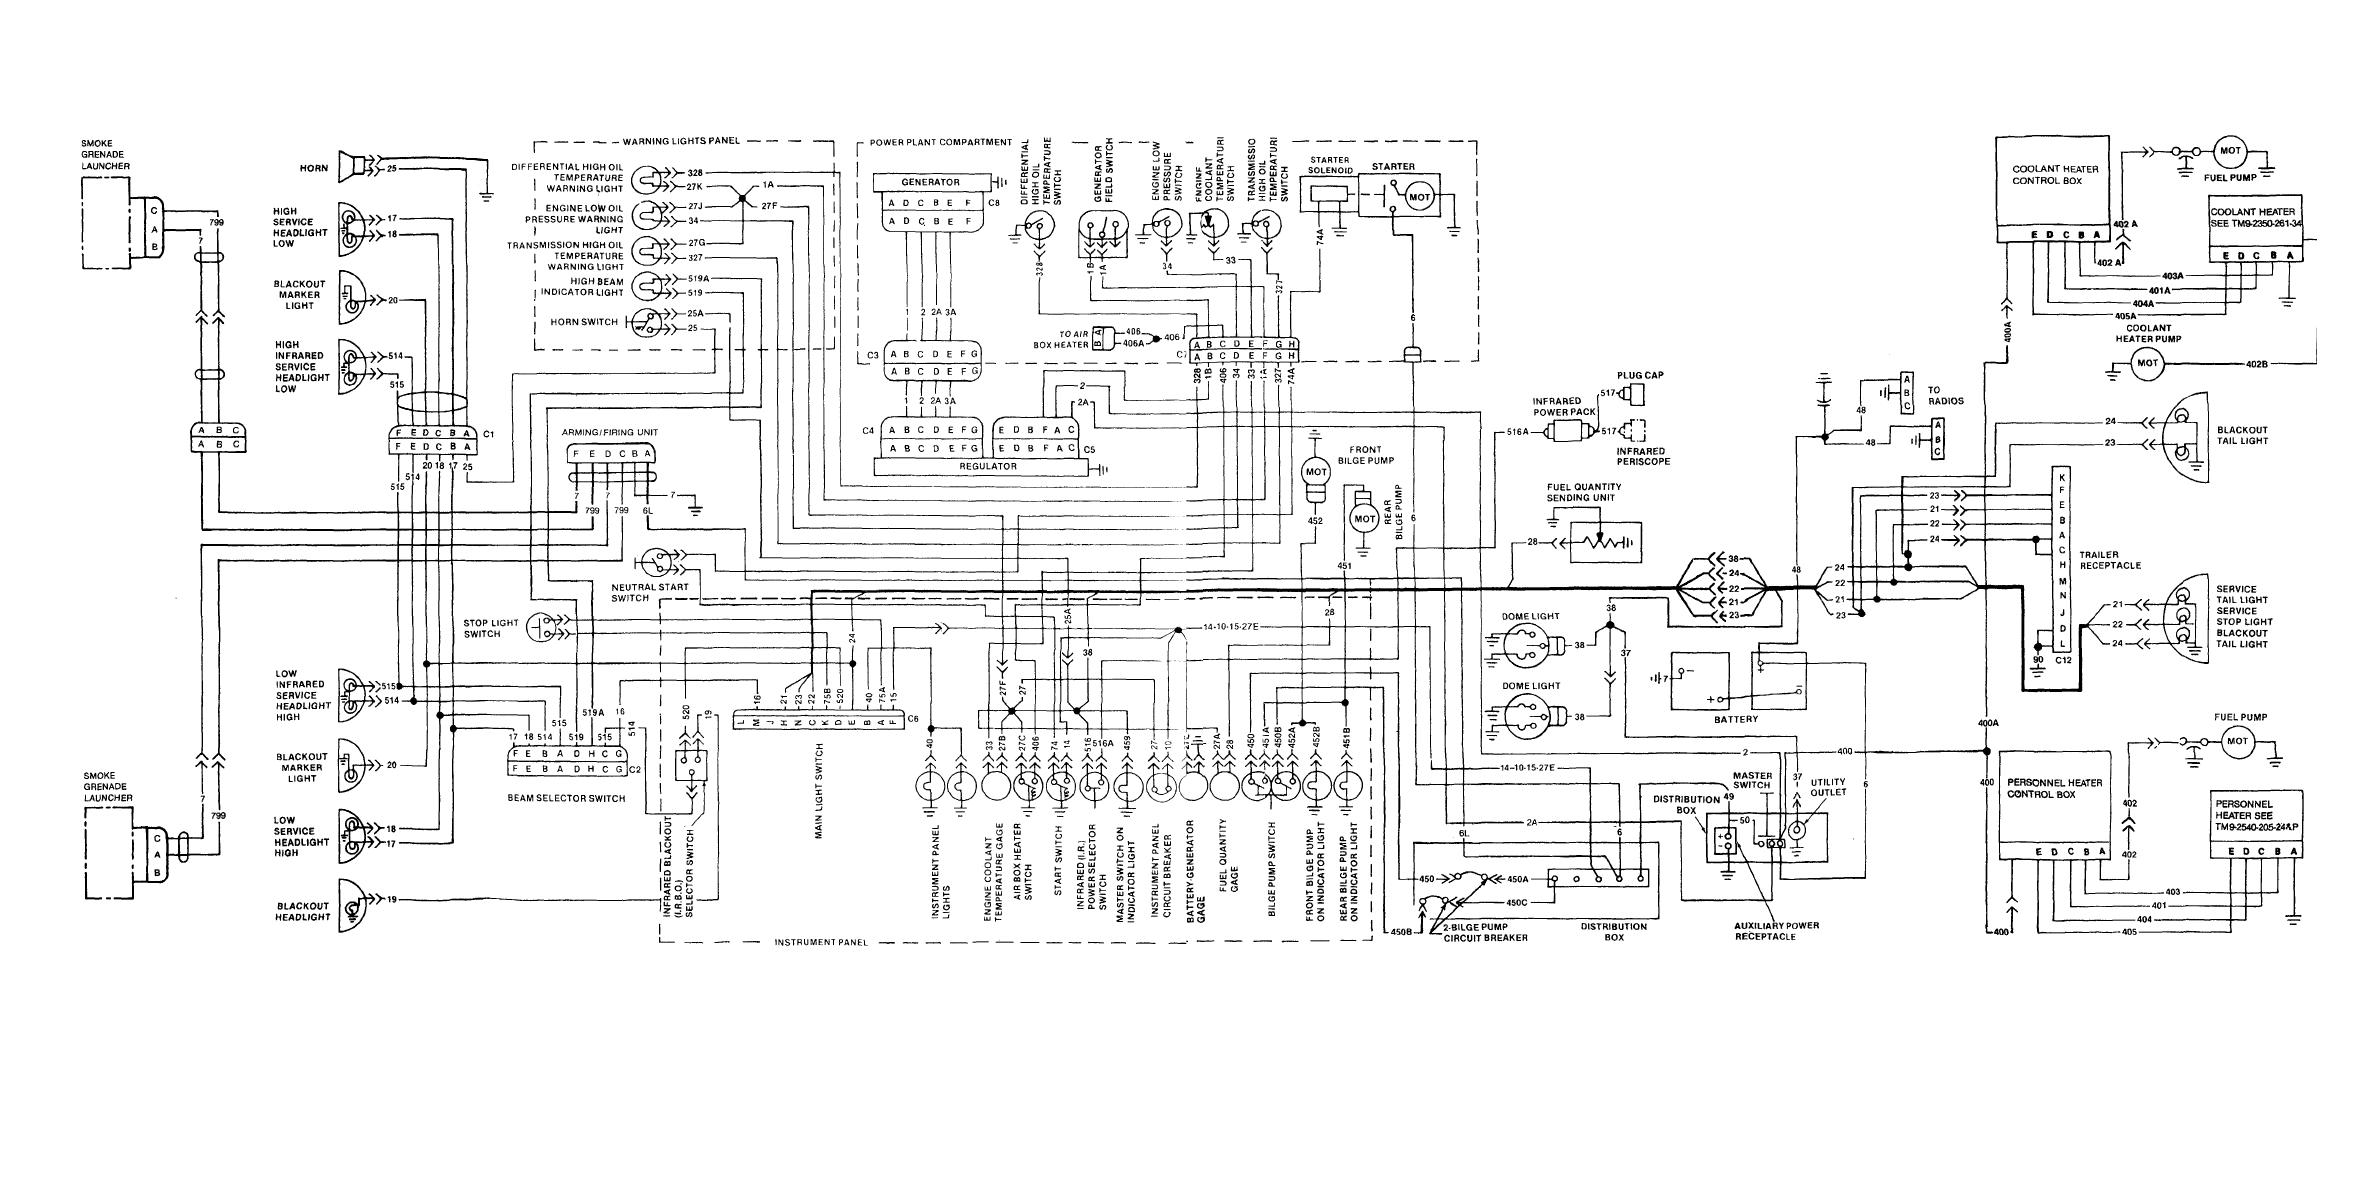 0825760739im m113a2 electrical wiring diagram 200 amp generator limitorque wiring diagram at gsmportal.co